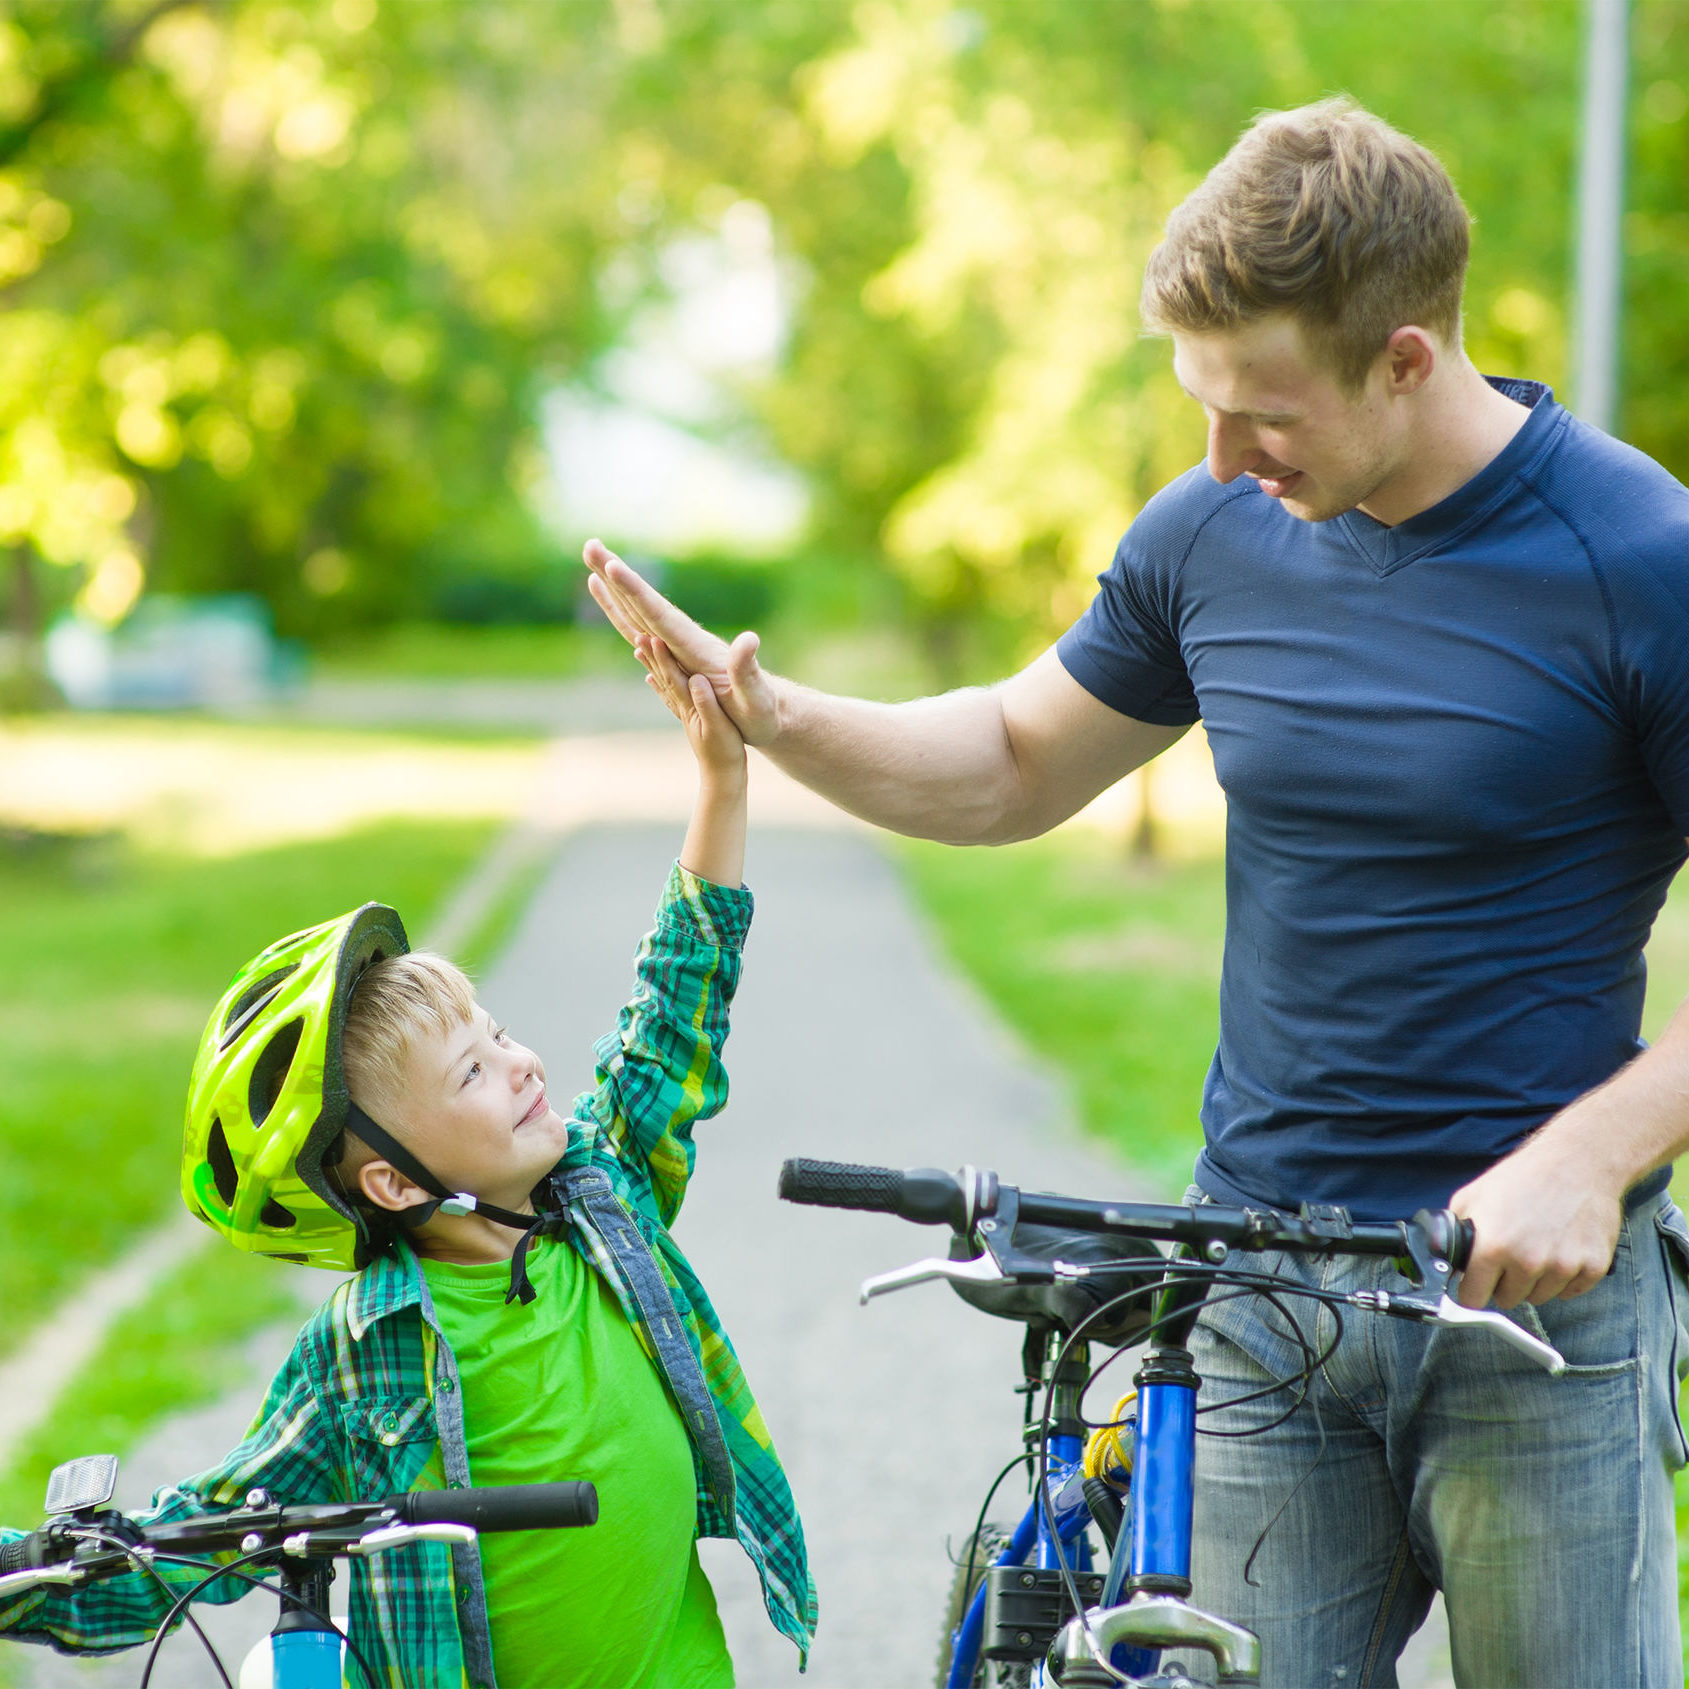 Young man and young boy give high five while cycling in the park